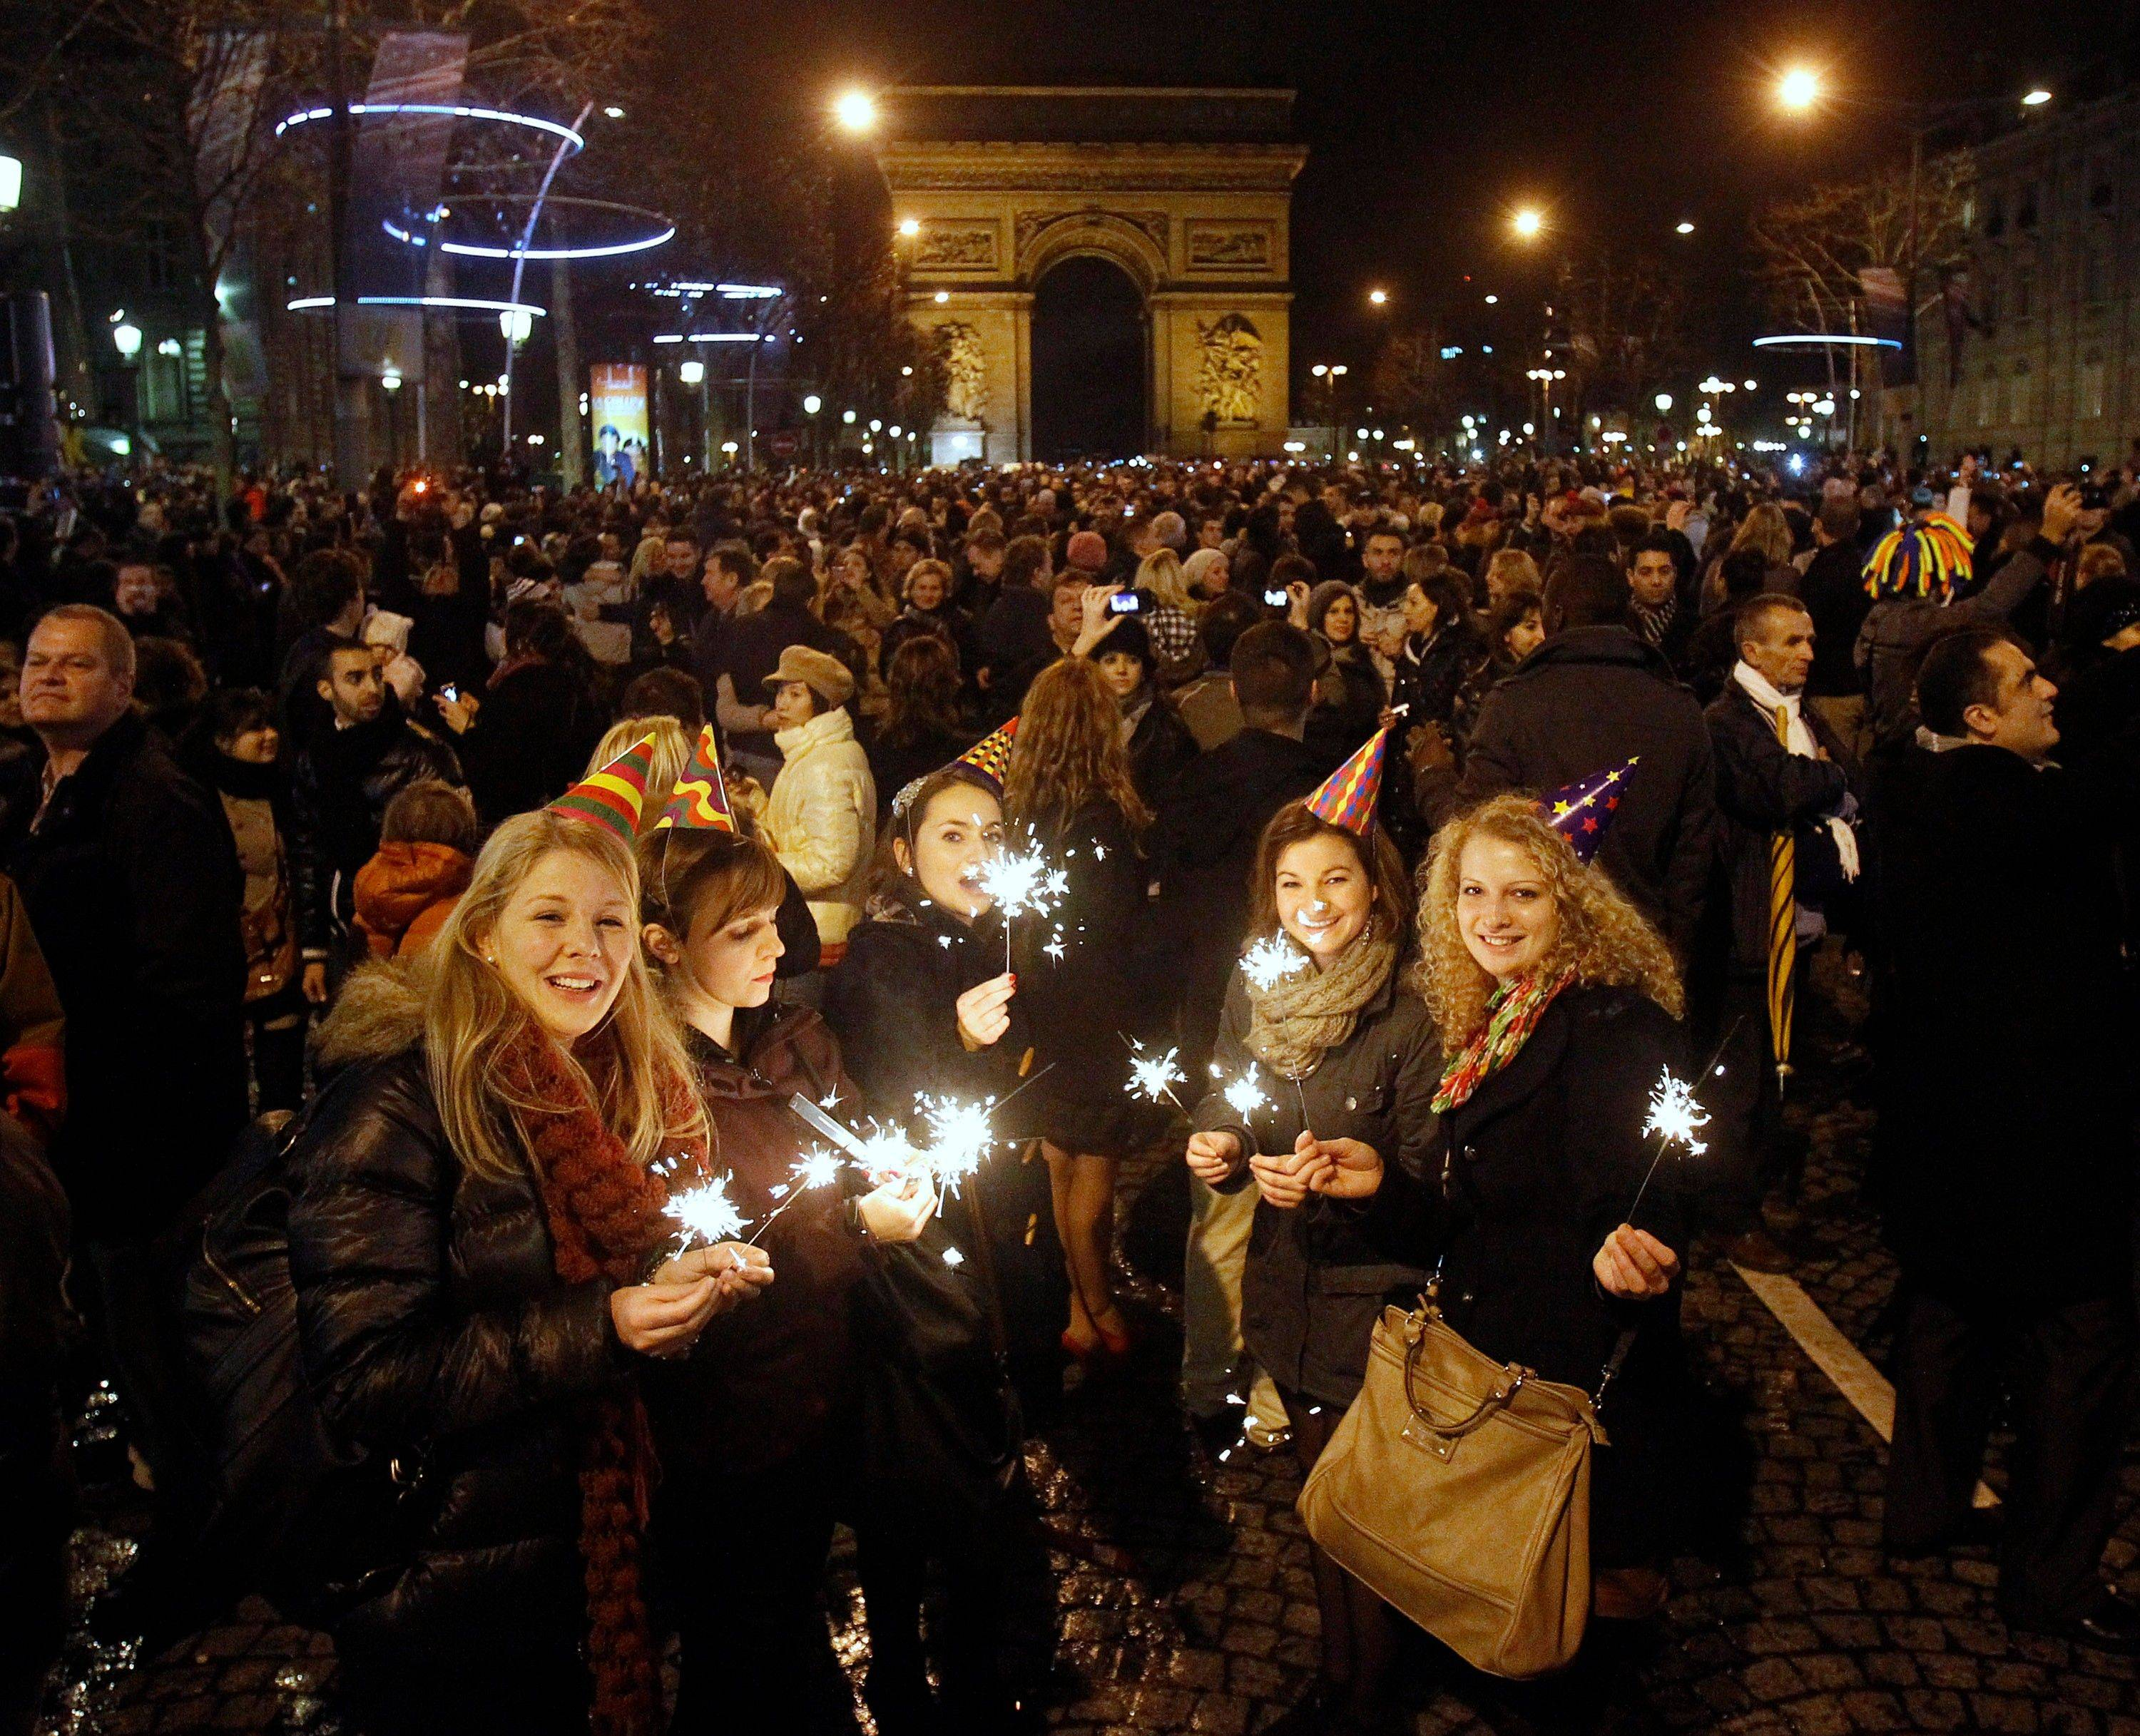 Revelers celebrate the New Year on the Champs Elysees avenue in Paris, Sunday Jan. 1, 2012. Visible in background is the Arc de Triomphe.